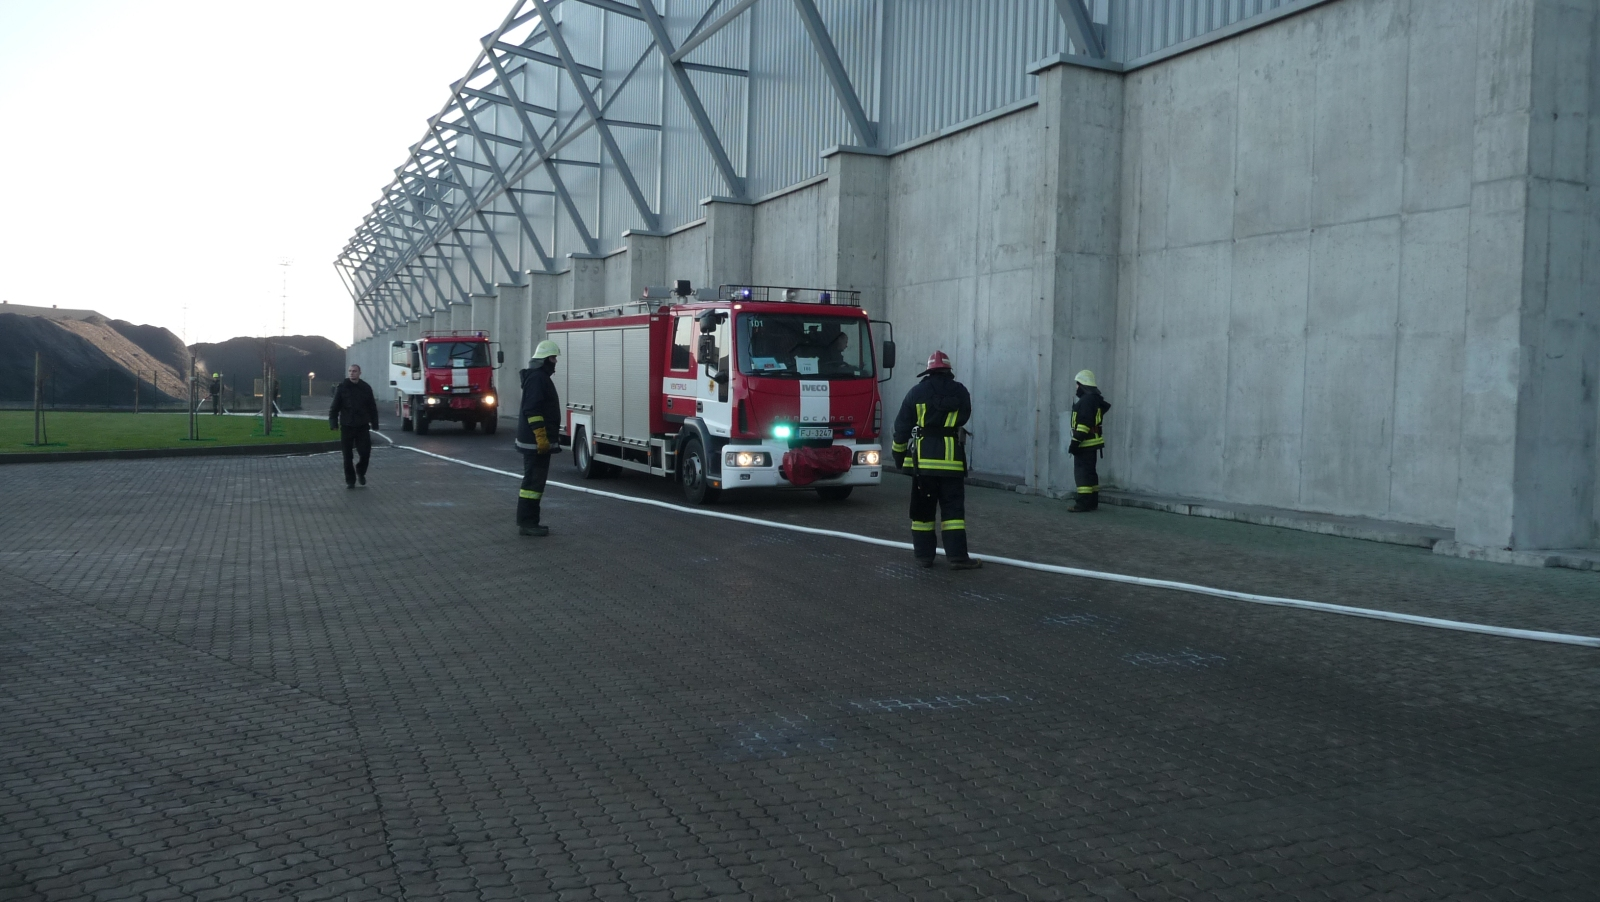 Fire drills: image 2 of 11